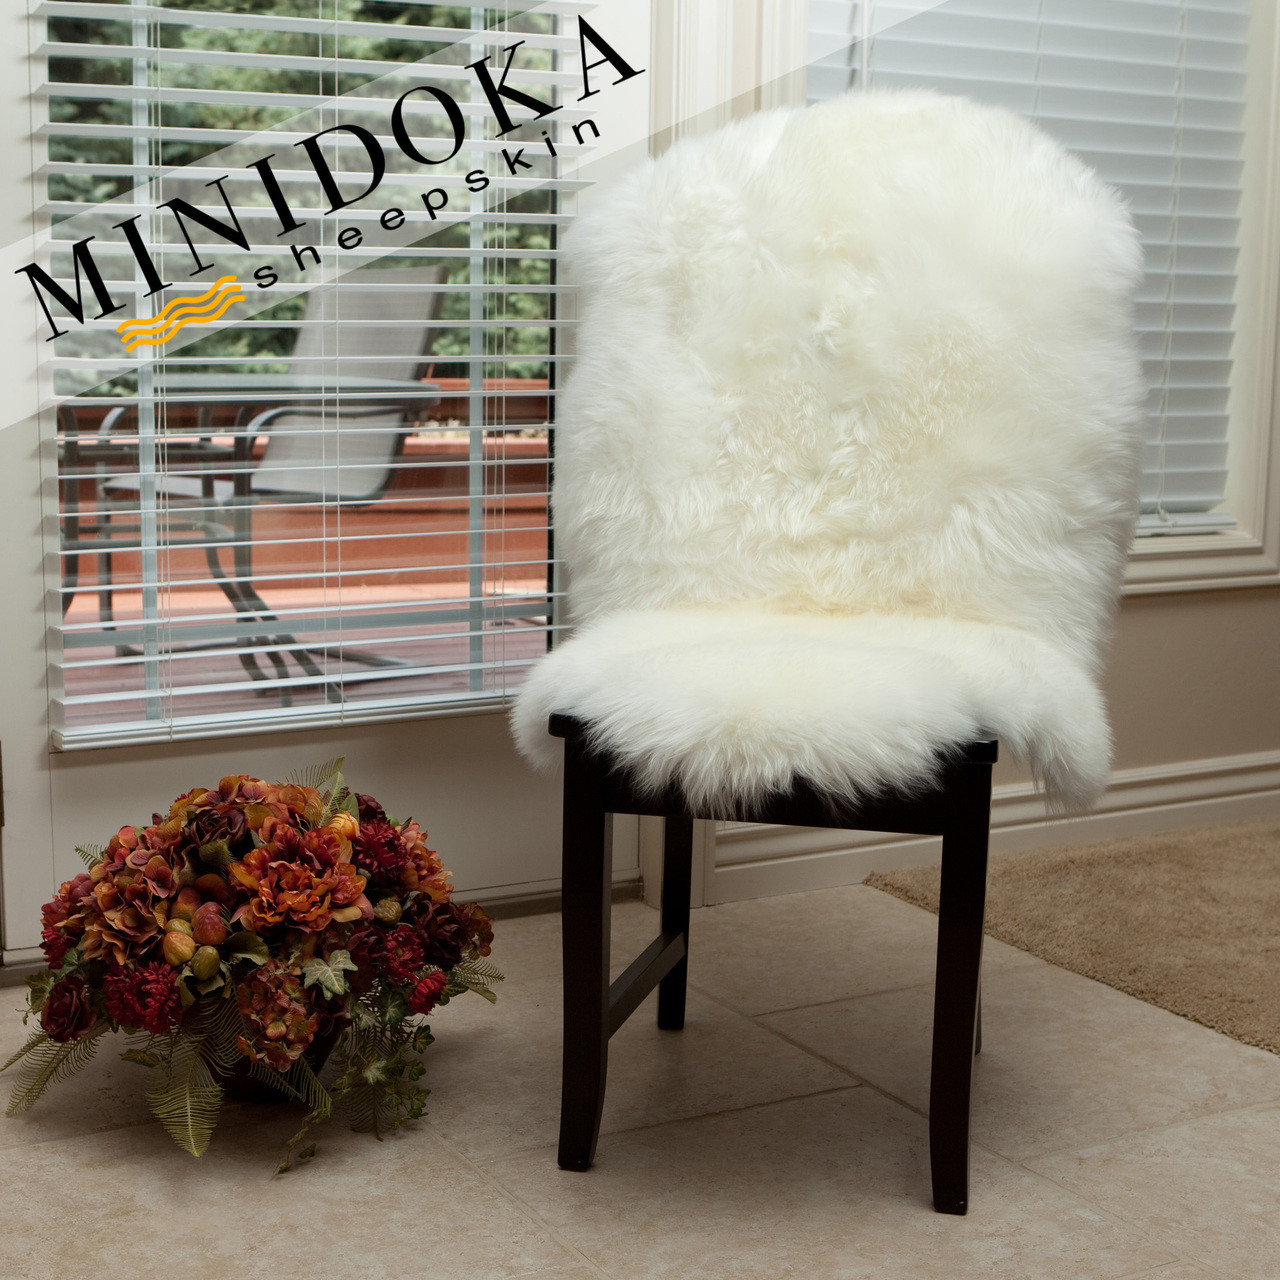 Single Pelt Ivory Sheepskin Rug from Minidoka Sheepskin